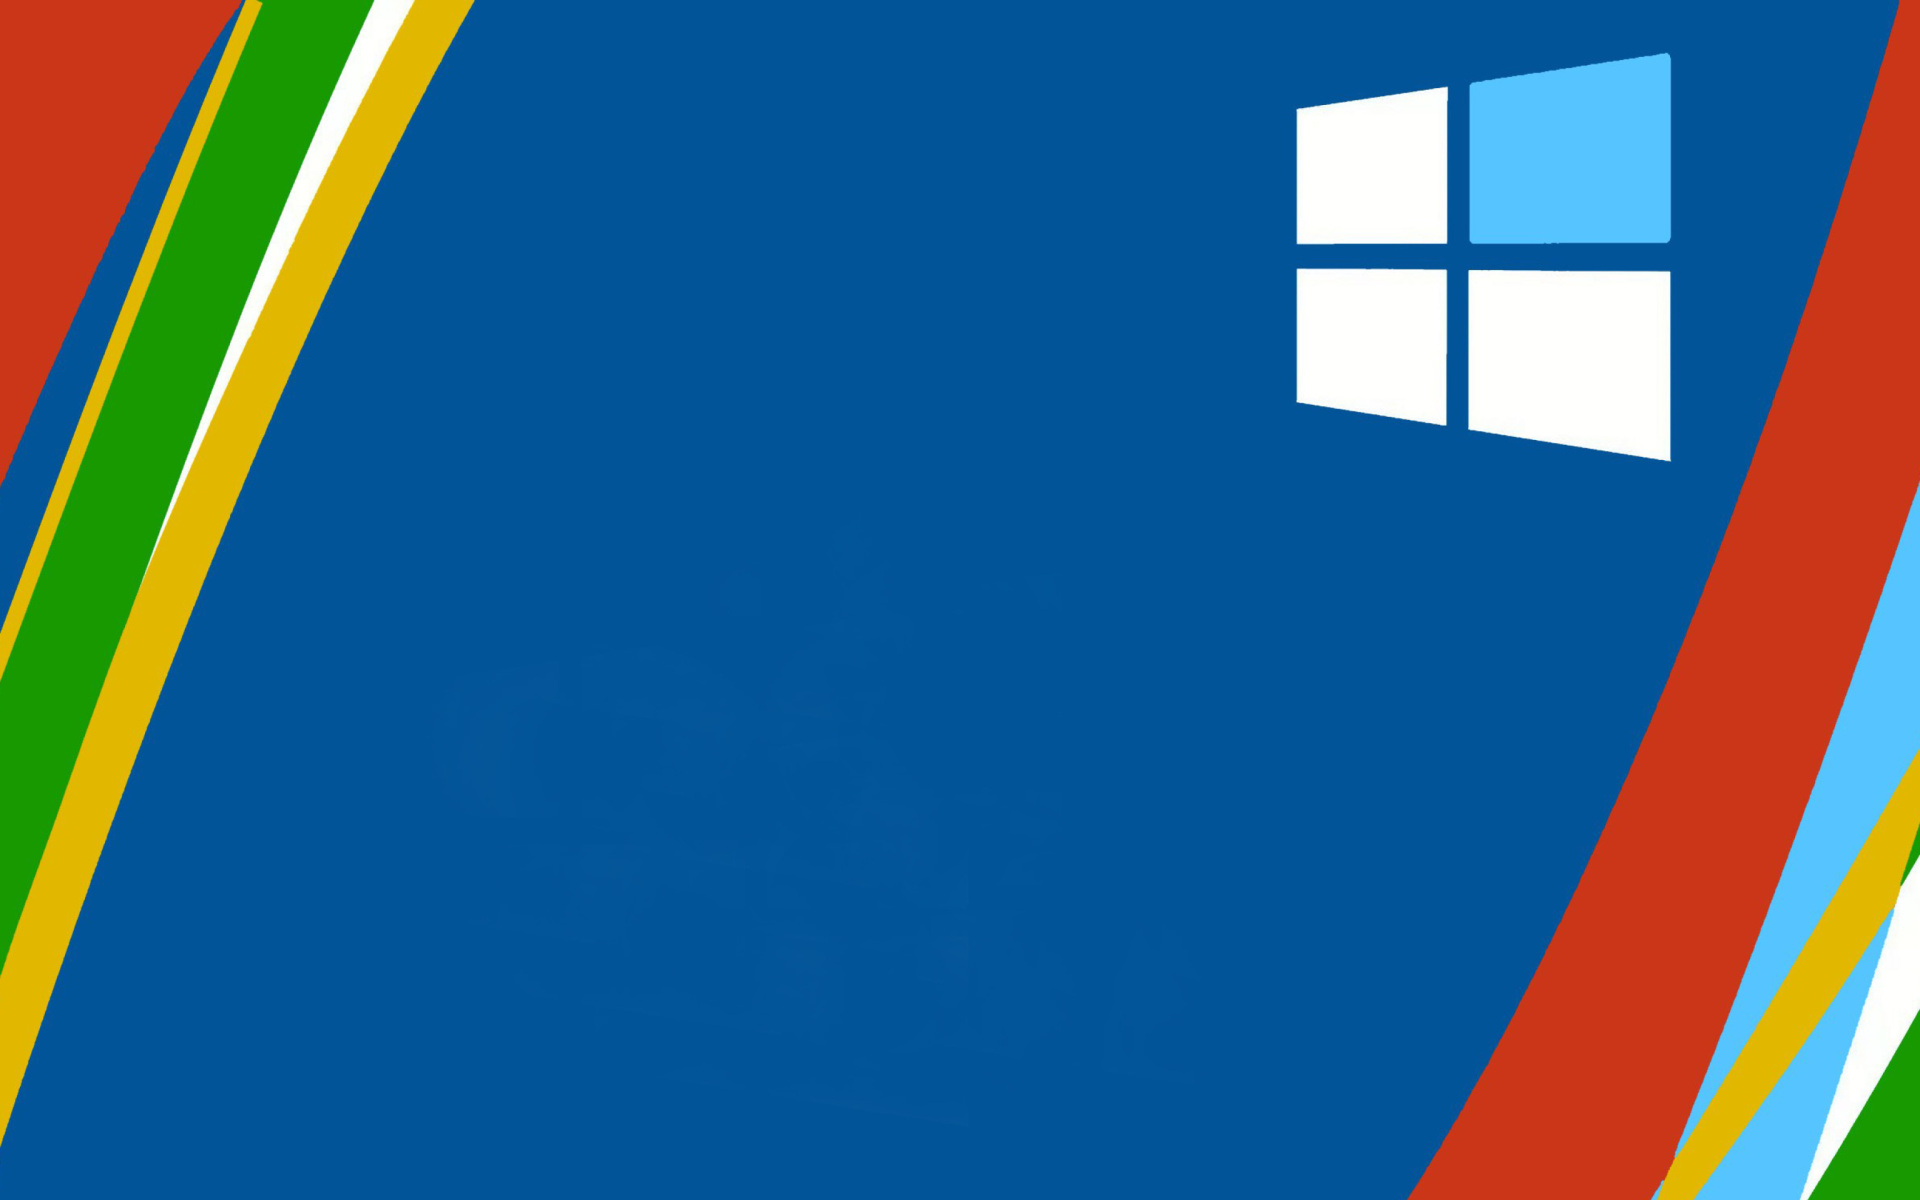 Windows 10 Hd Personalization Fondos De Pantalla Gratis